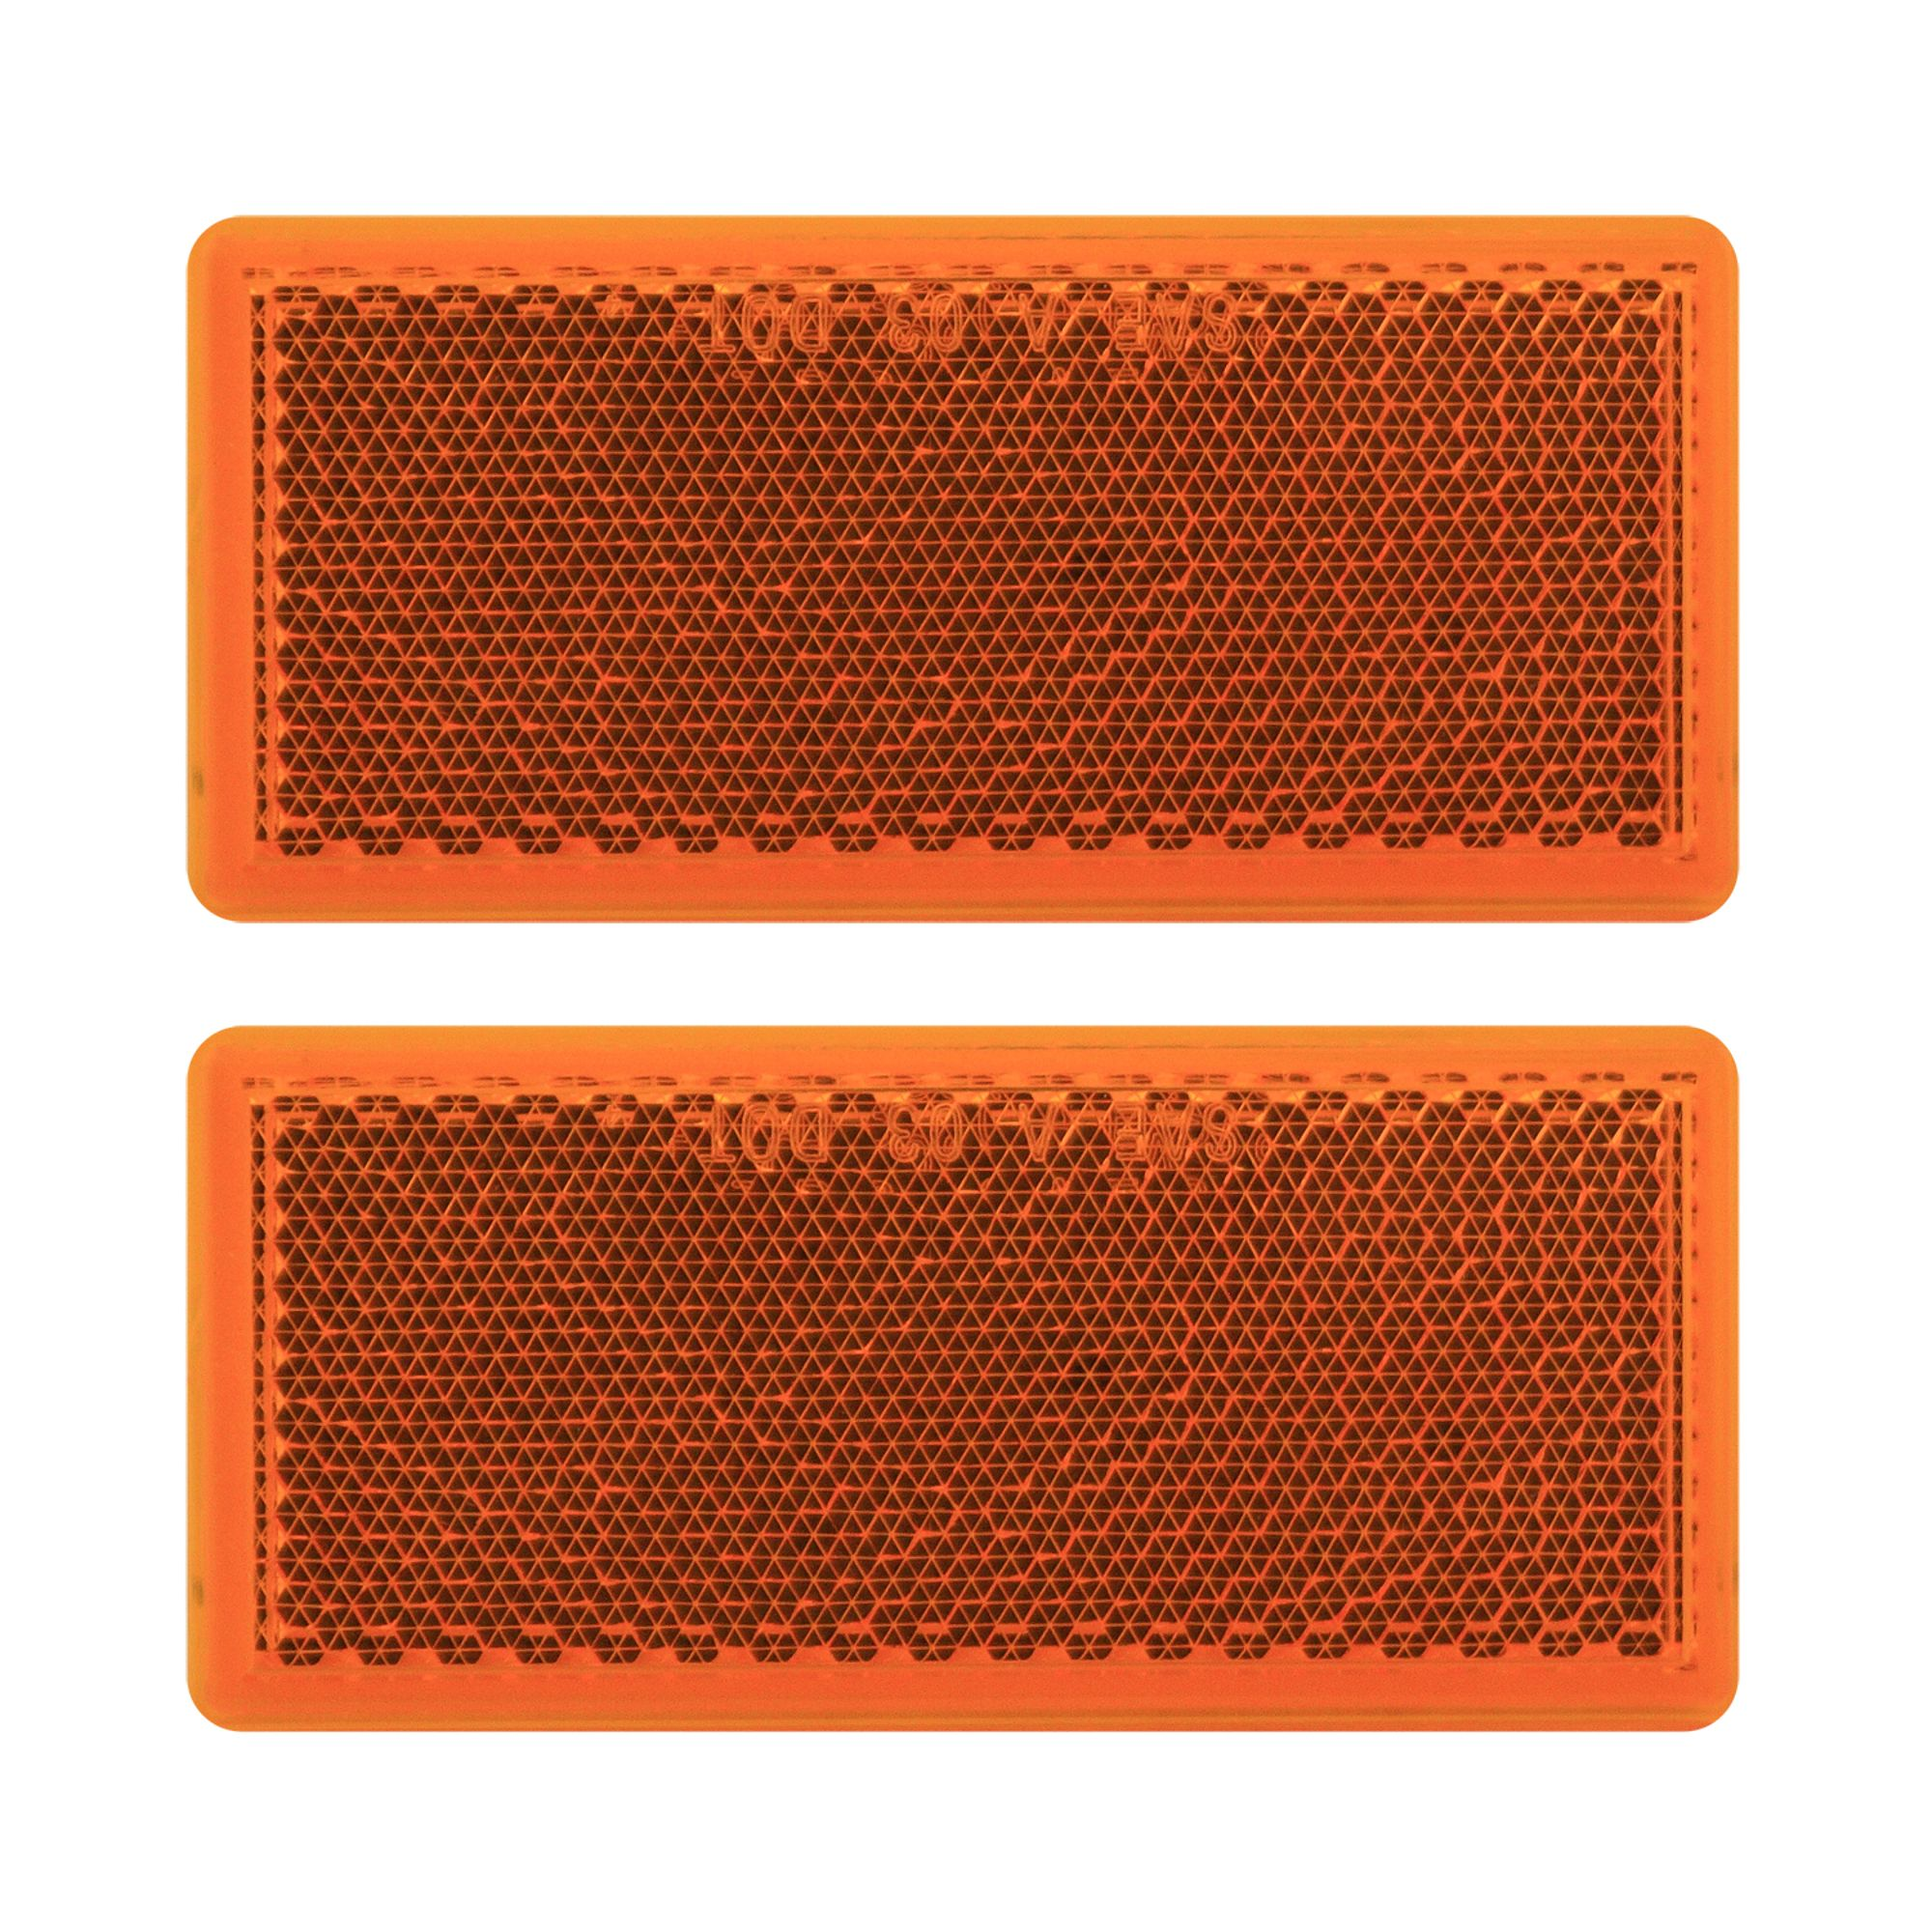 Pilot Automotive NV-5040A 2 Piece Rectangular Stick-On Side Marker / Reflector- Amber Size: 3-7/32 x 1-7/16 x 3/16